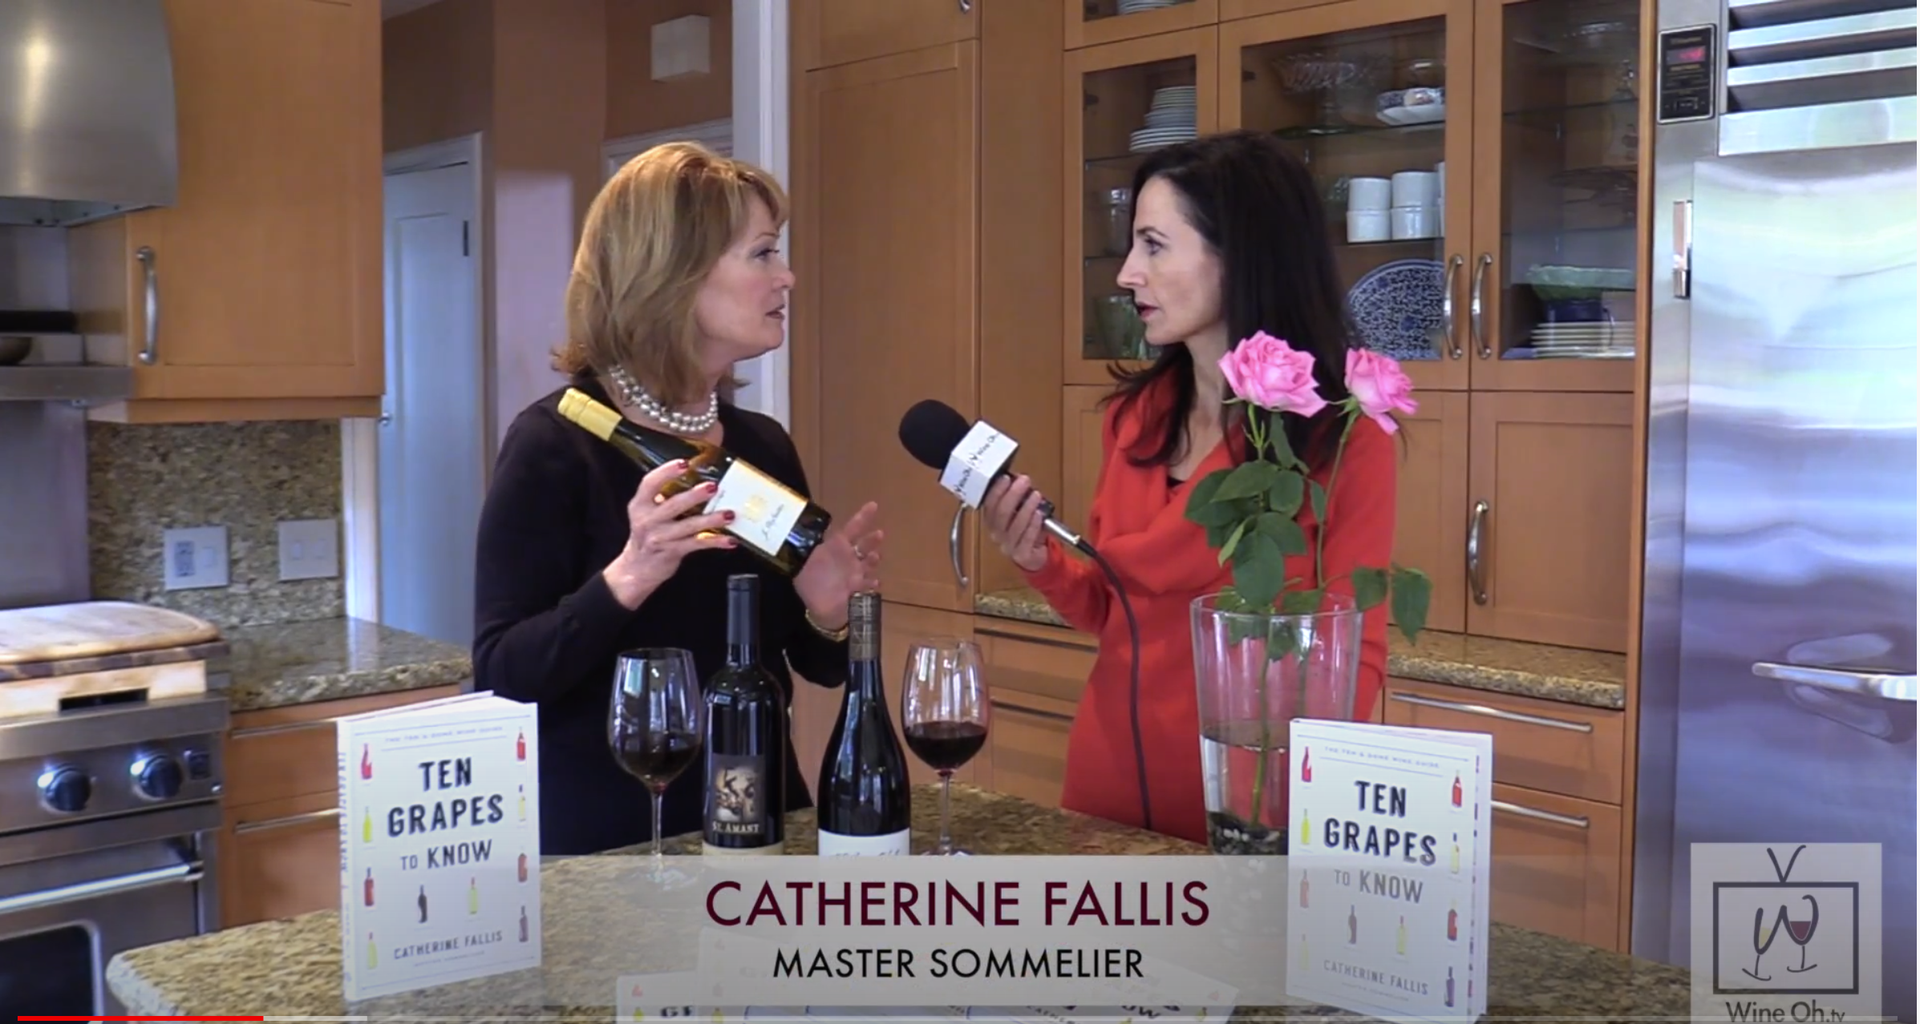 Master Sommelier Reveals 3 Wine Grapes You Must Know - Wine Oh TV